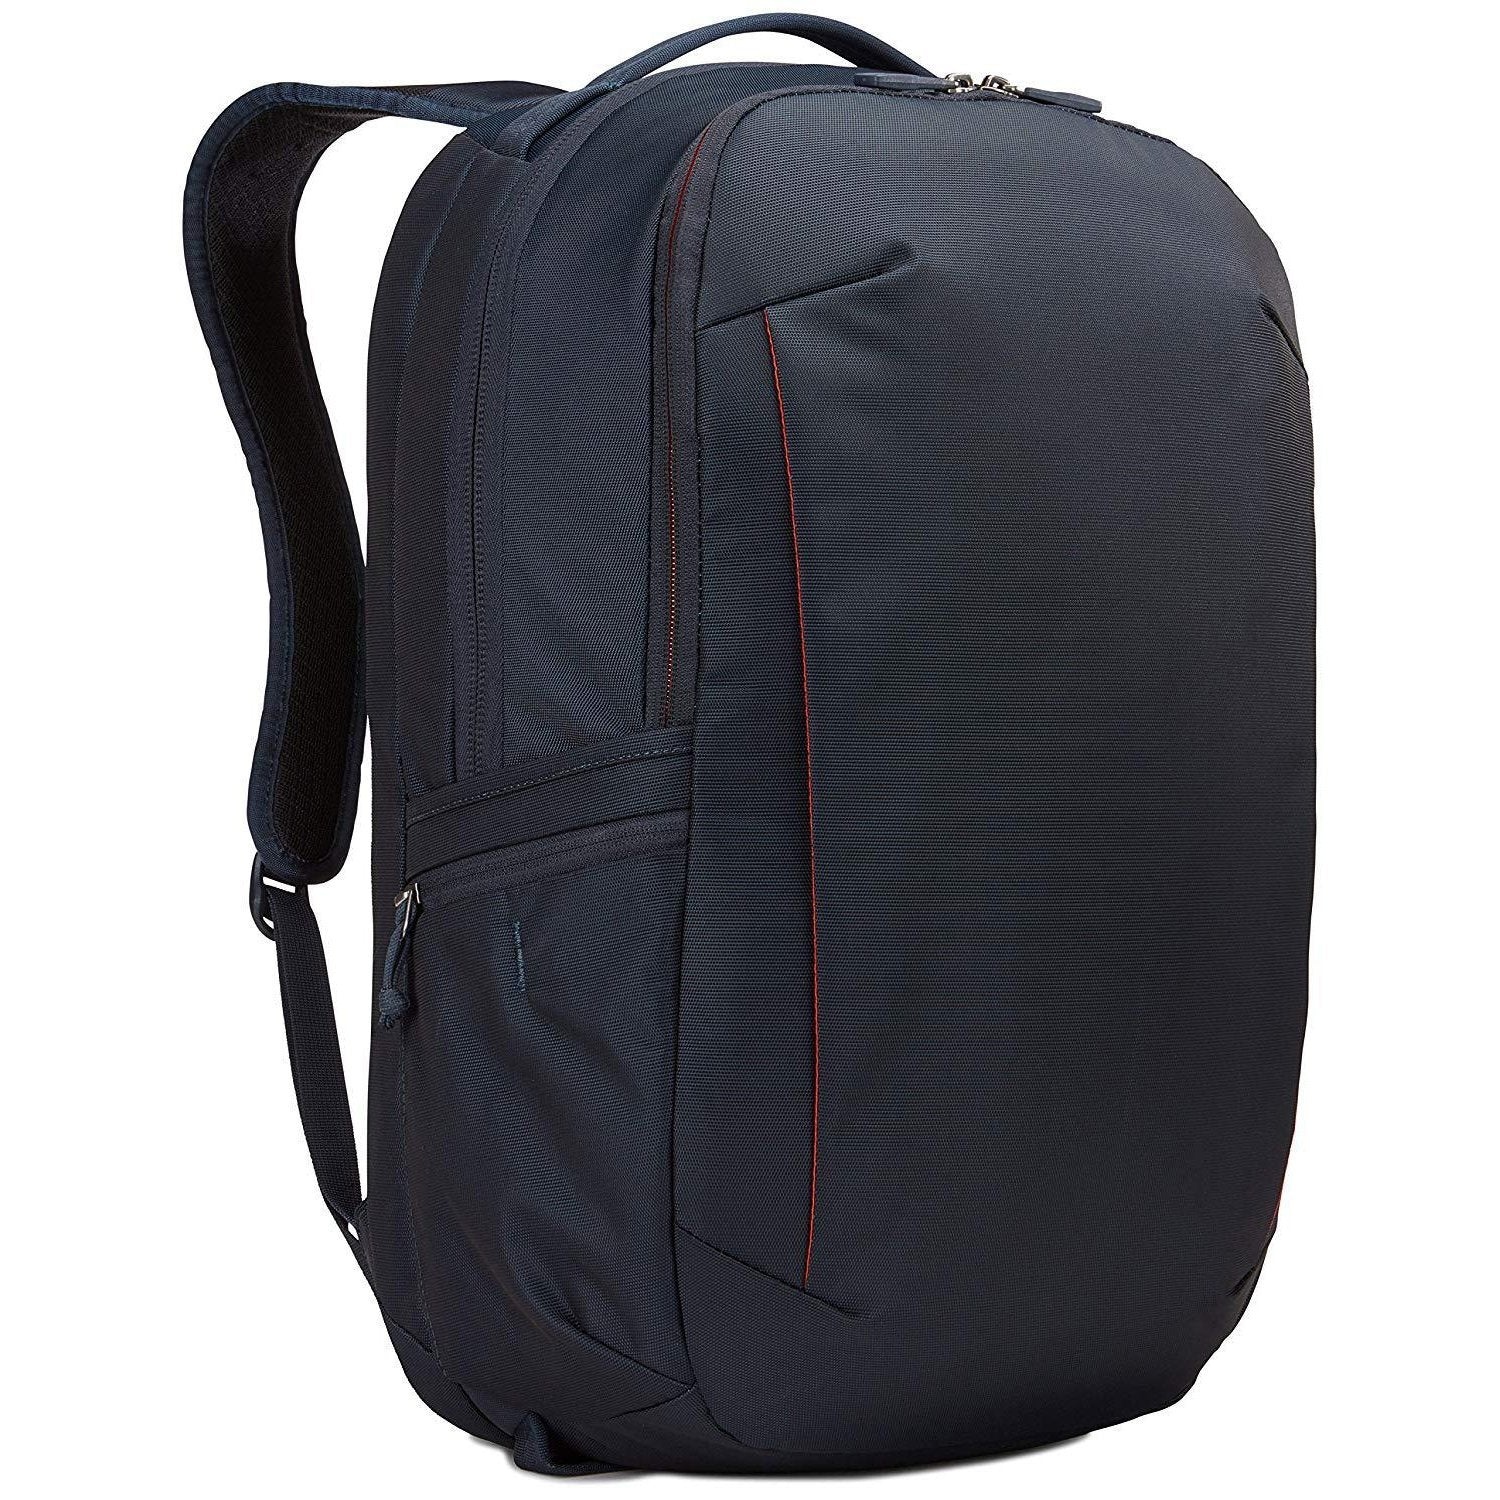 30L Backpack With Safe Edge Construction